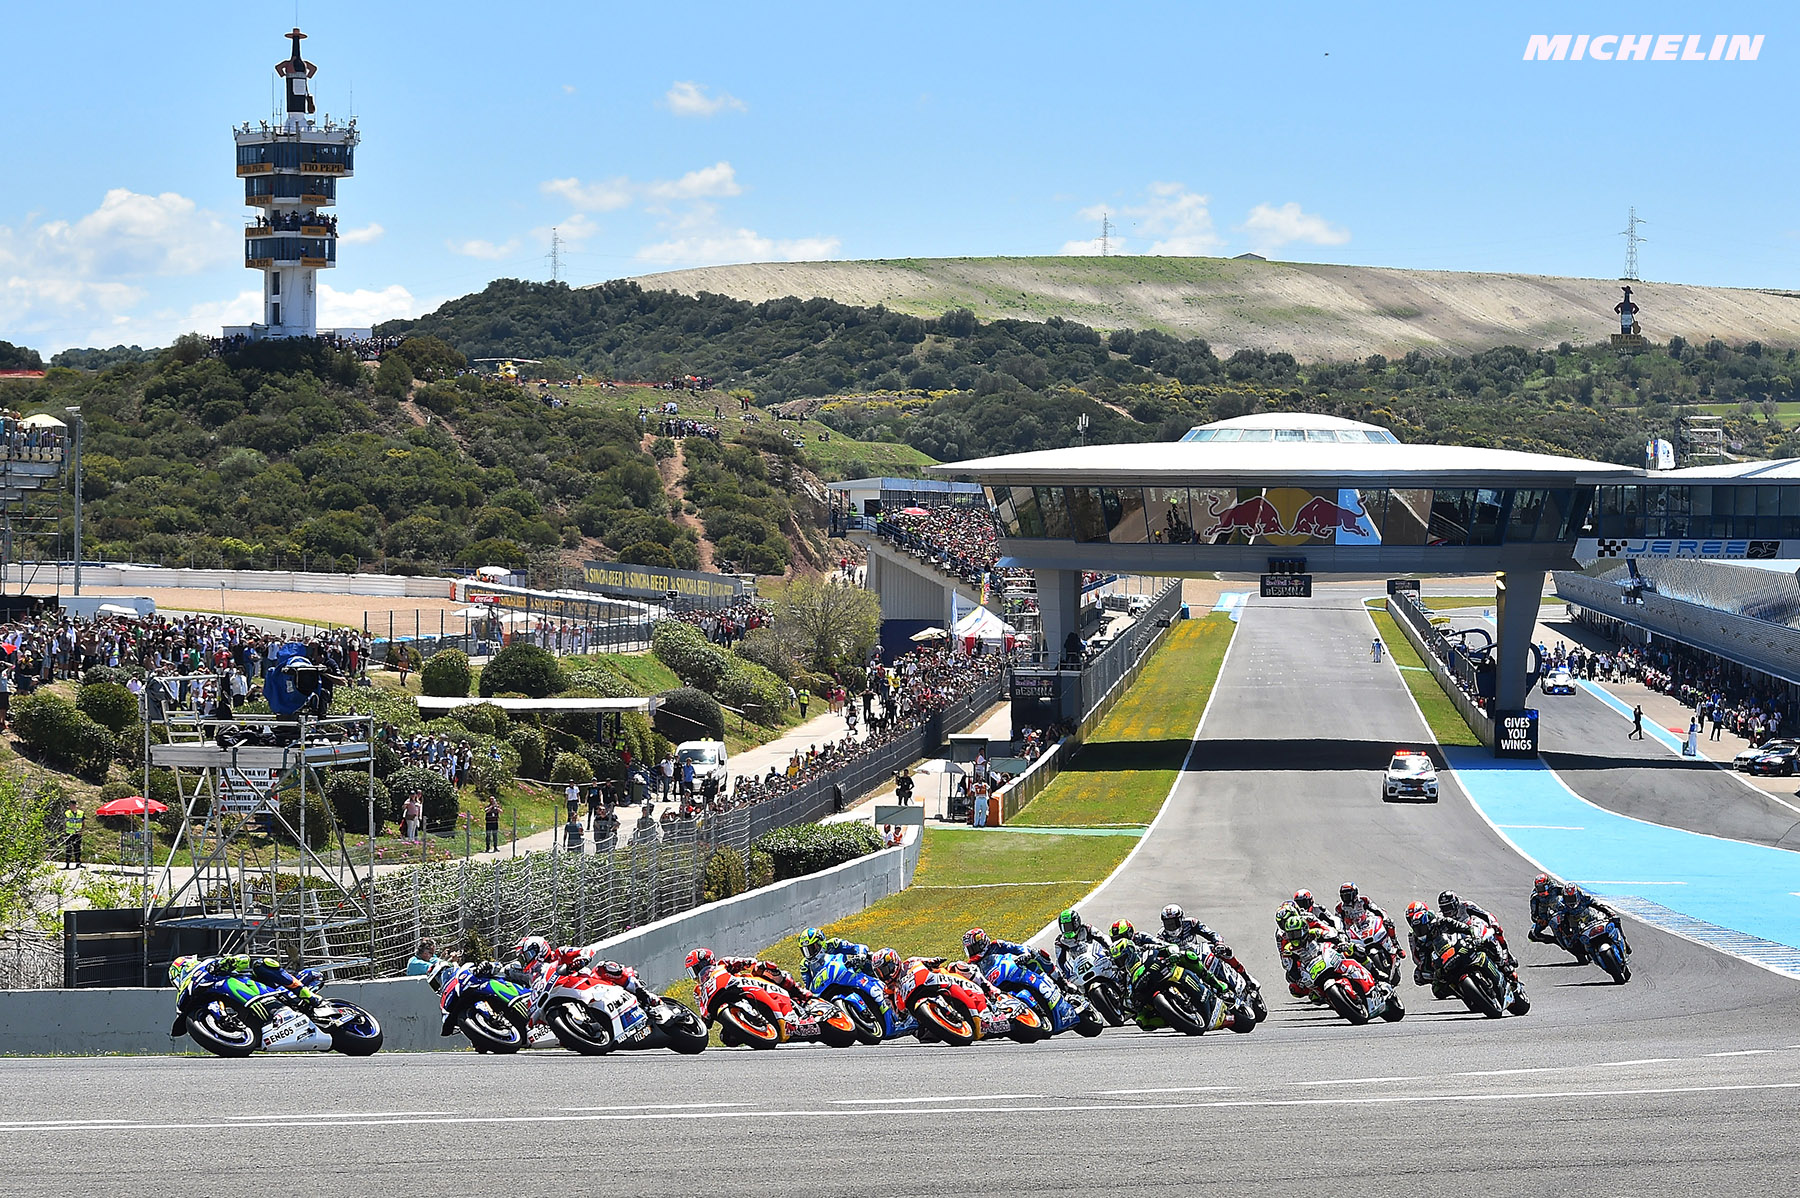 MotoGP: back to Europe